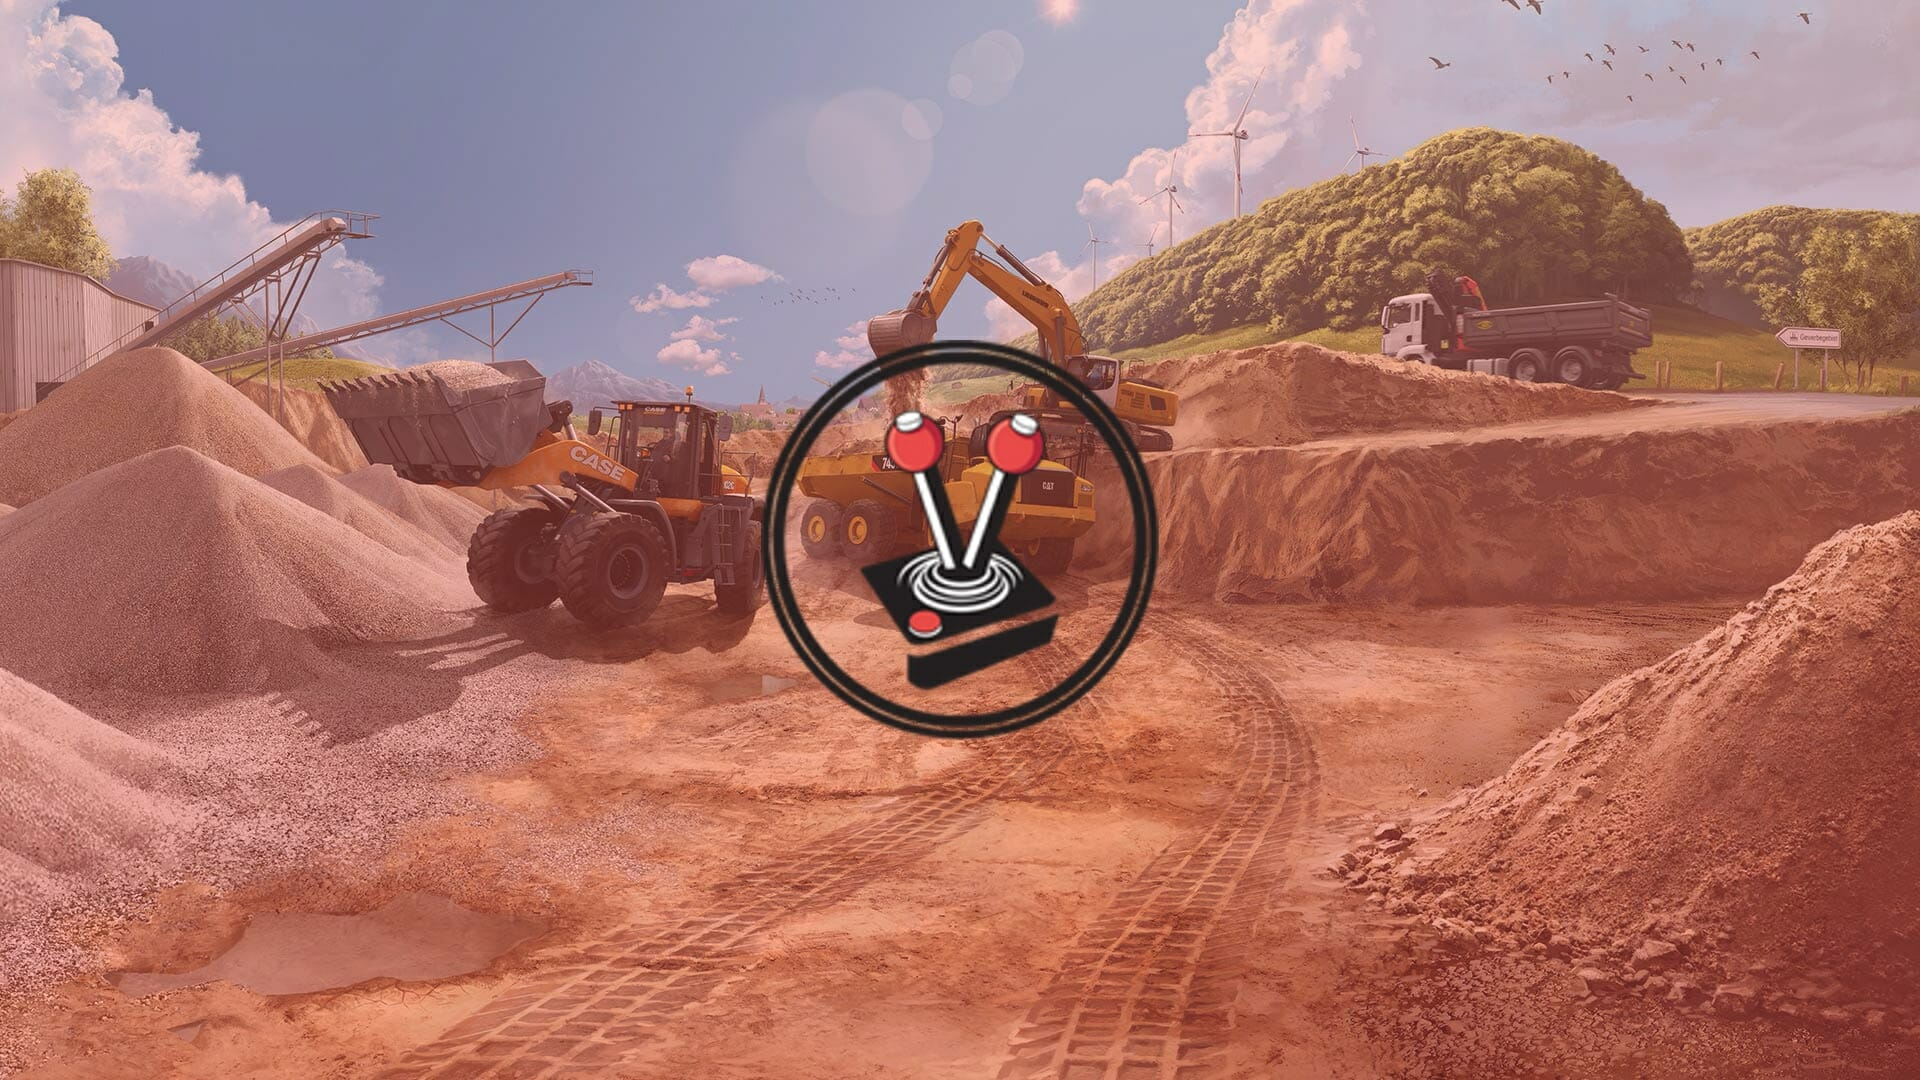 Construction Simulator 3 Console Edition Review - Surprisingly addictive - Vamers